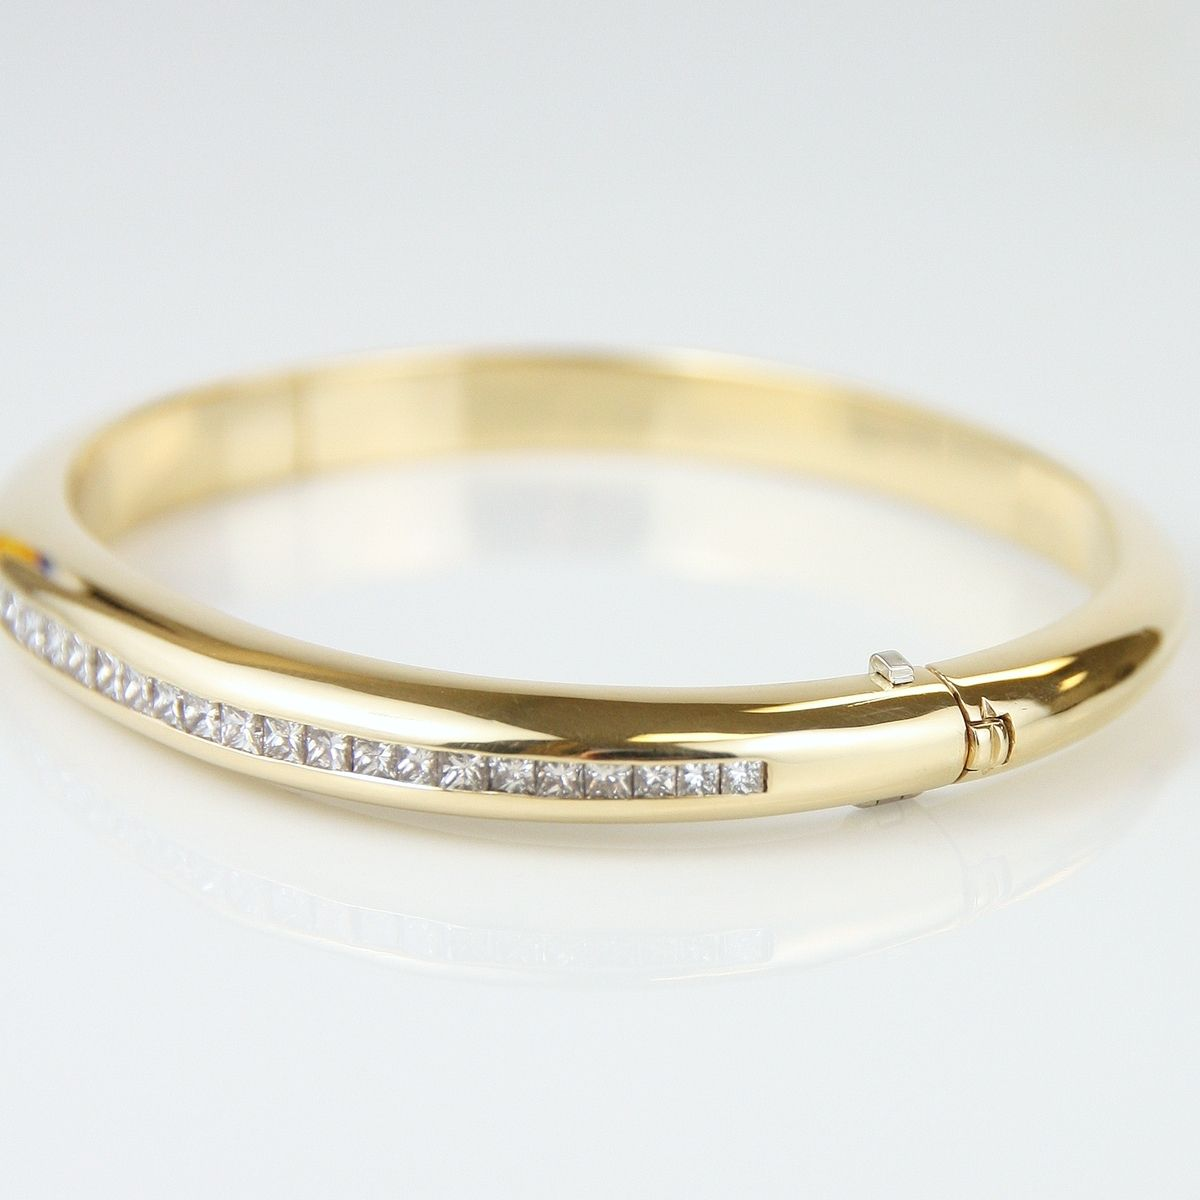 a95a704ec5a69 Hand Made Elegant 18kt Yellow Gold And Diamond Bangle Bracelet by ...